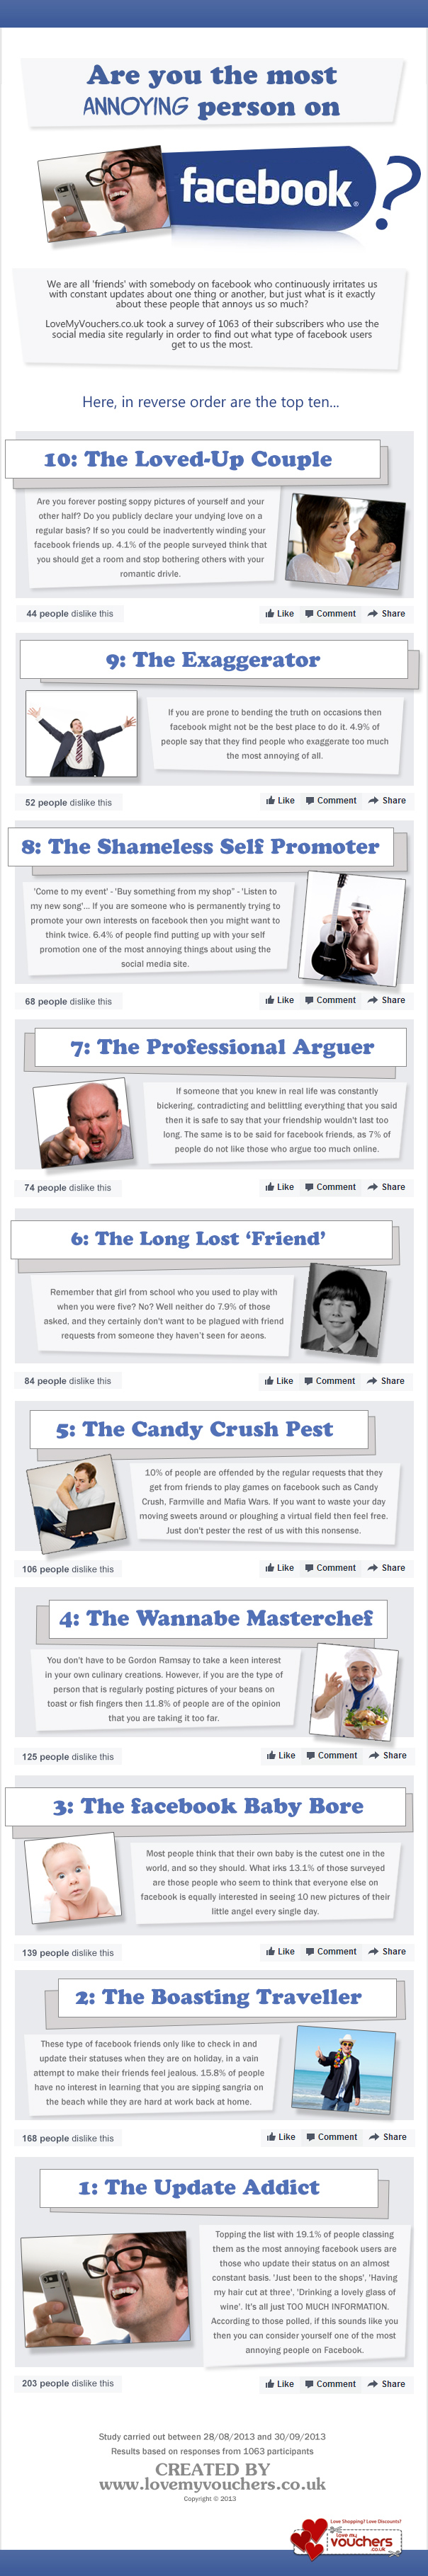 The 10 most annoying people on facebook